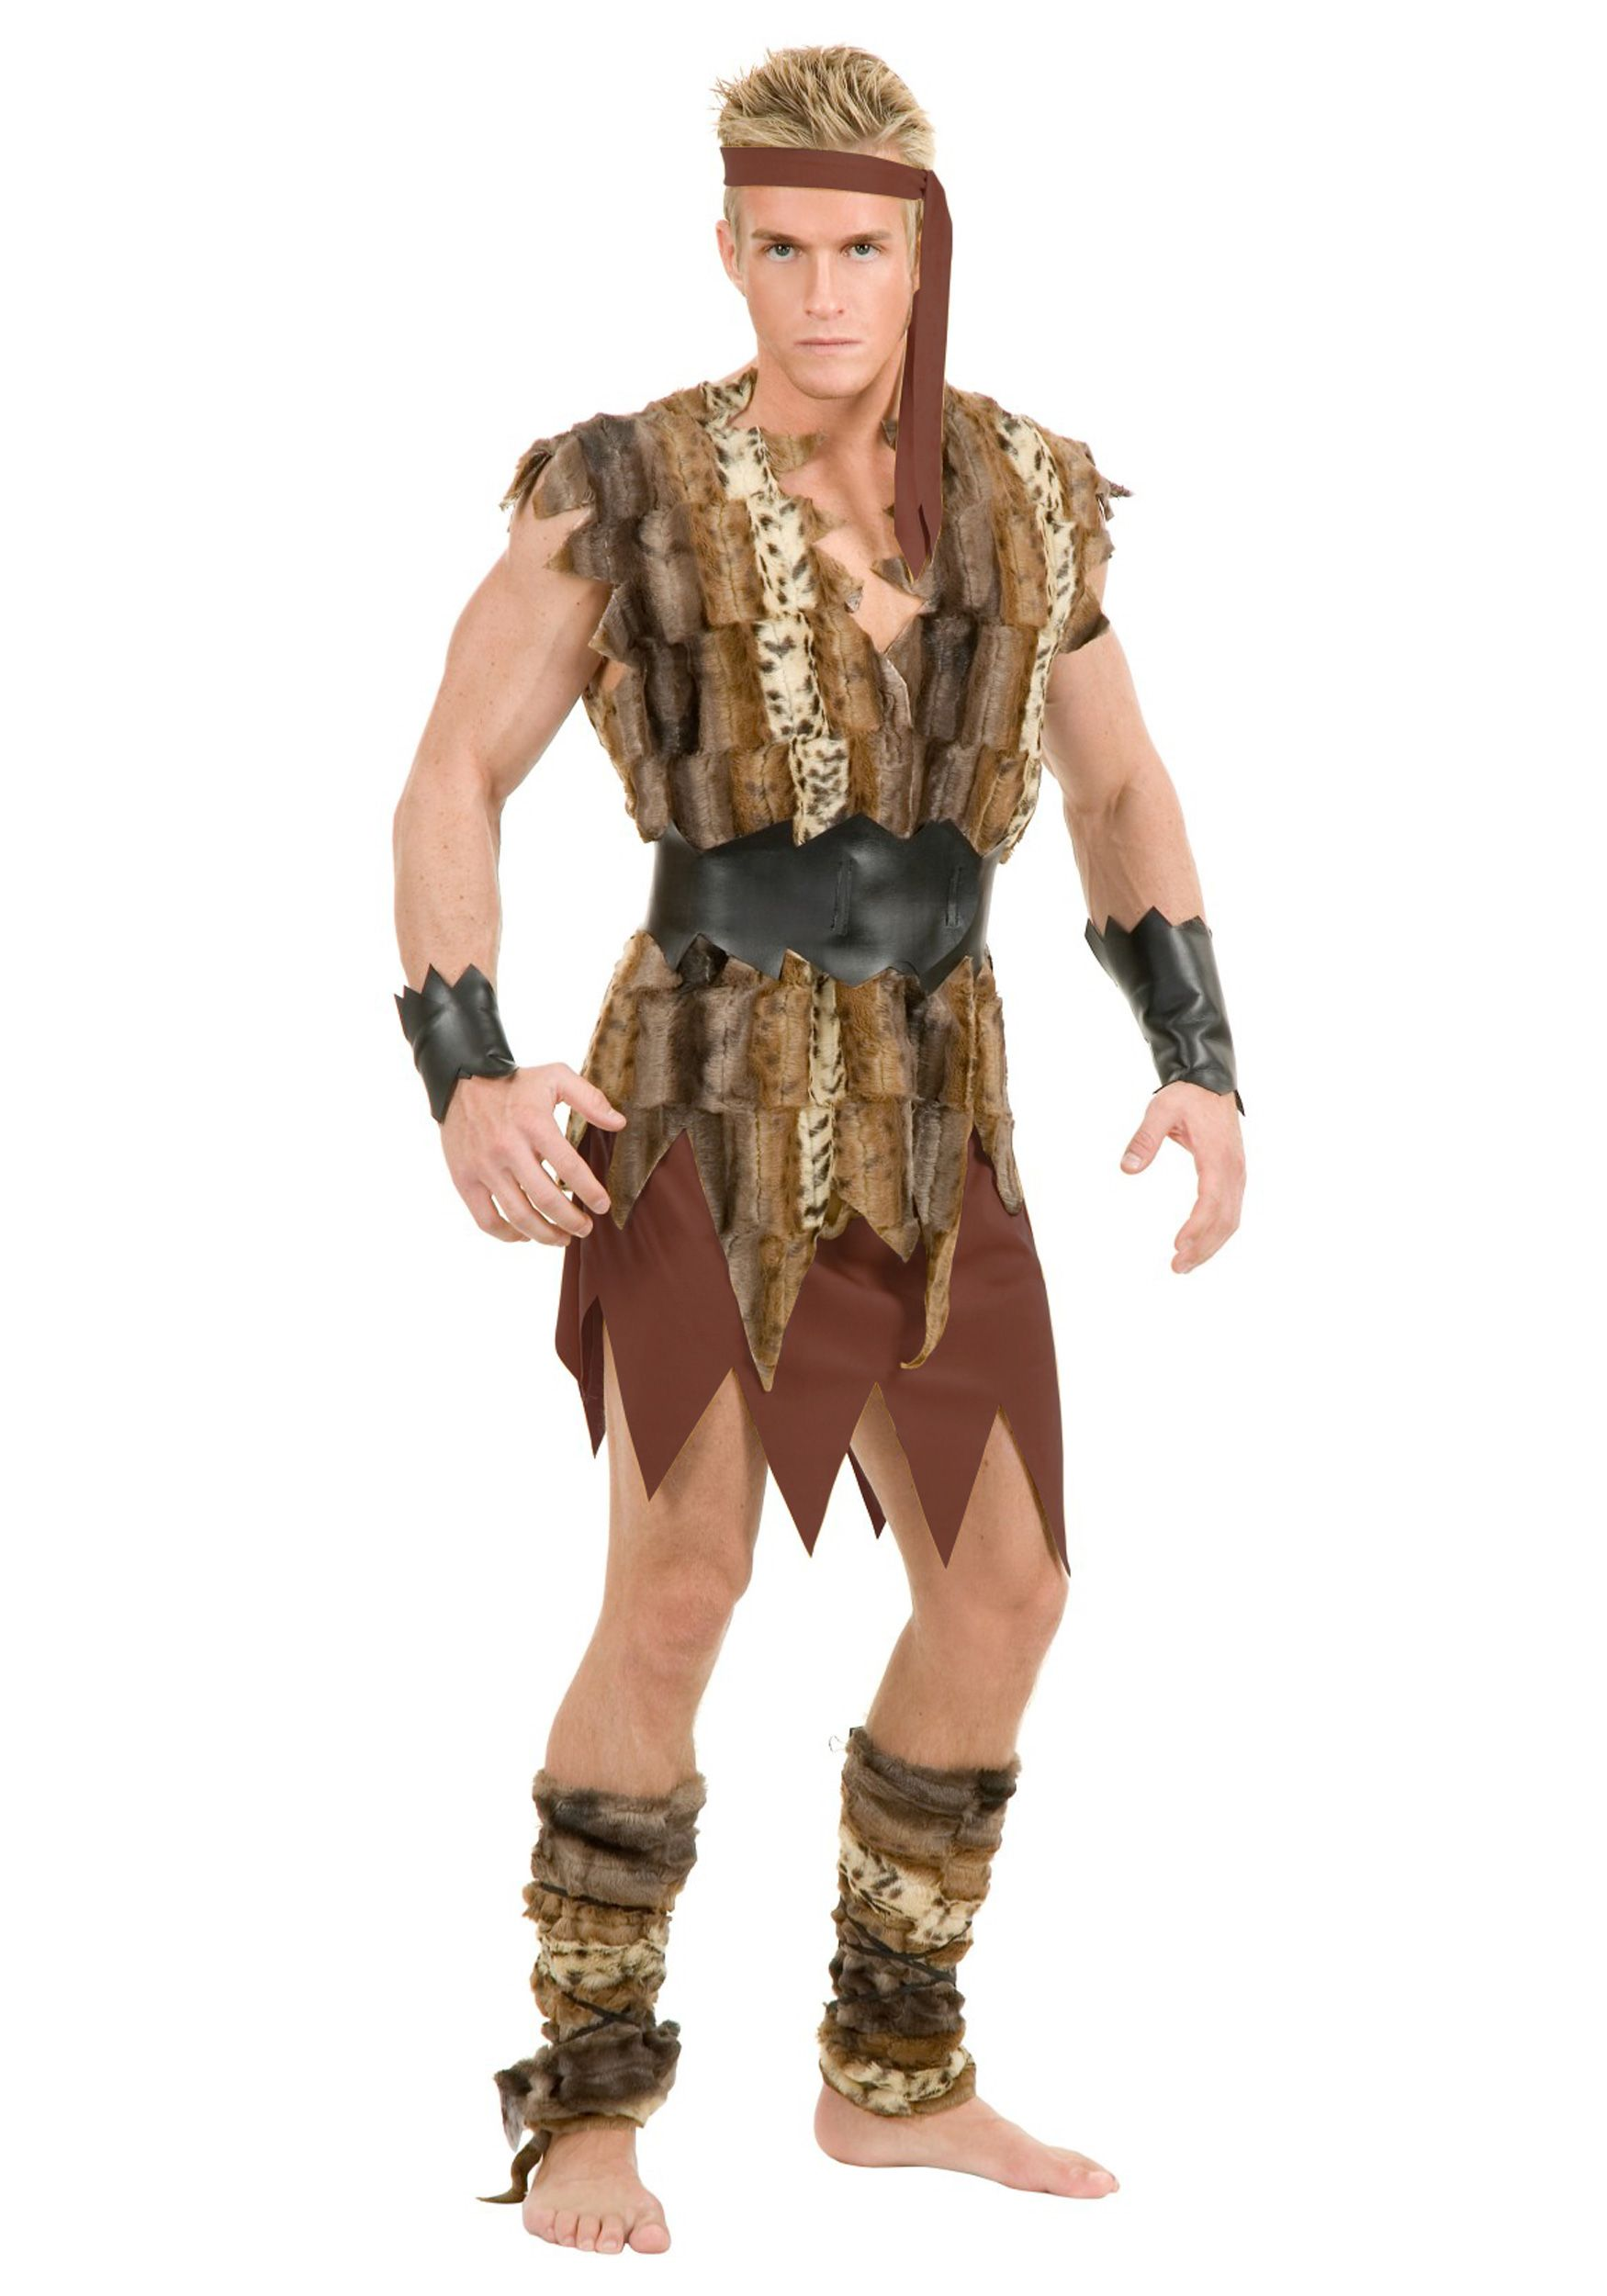 Caveman costumes | ... Costume Ideas > Historical Costumes ...